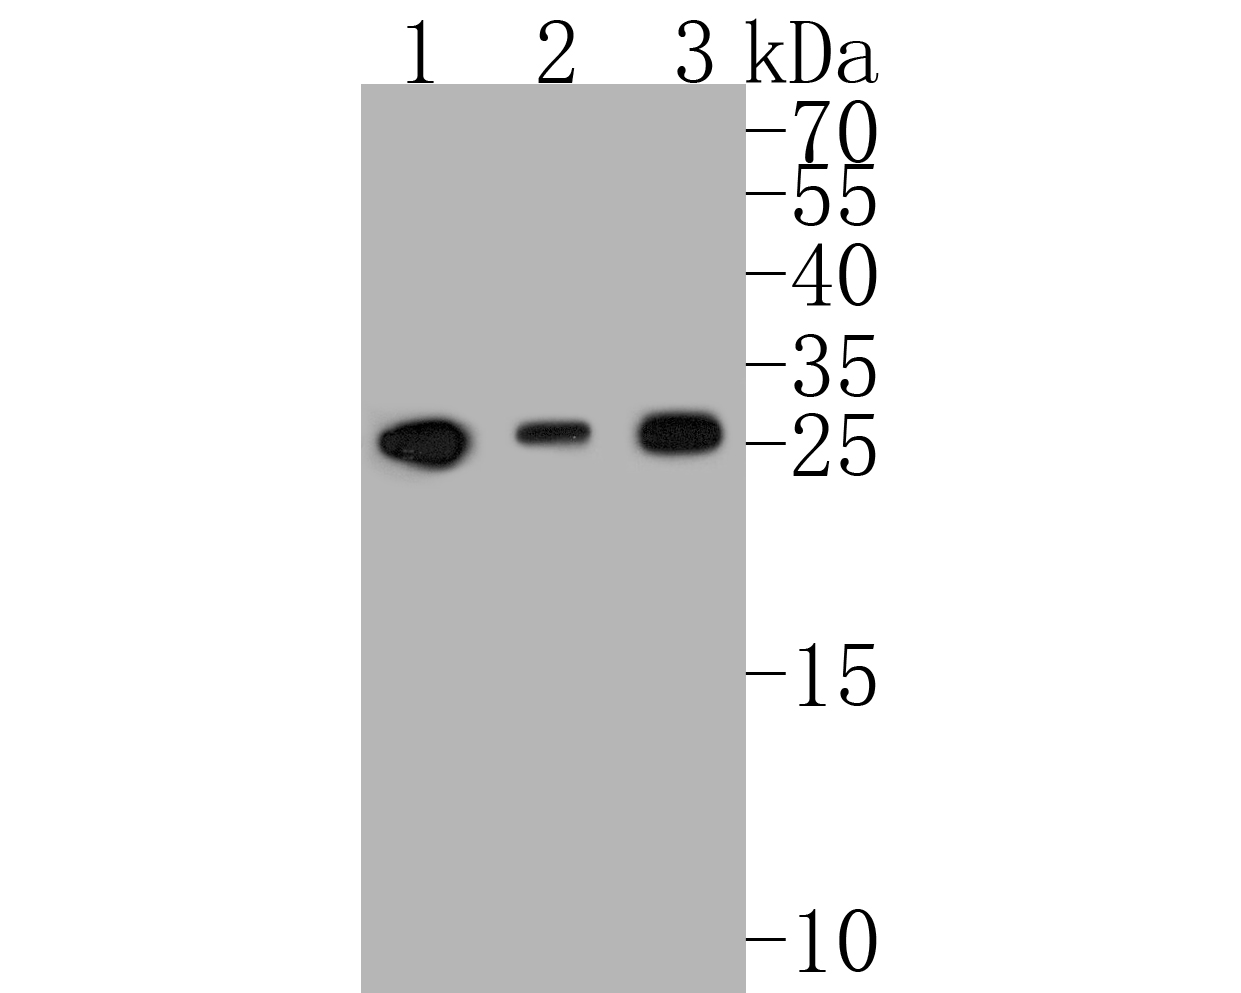 Western blot analysis of Bcl-2 on different lysates. Proteins were transferred to a PVDF membrane and blocked with 5% BSA in PBS for 1 hour at room temperature. The primary antibody (ET1603-11, 1/500) was used in 5% BSA at room temperature for 2 hours. Goat Anti-Rabbit IgG - HRP Secondary Antibody (HA1001) at 1:5,000 dilution was used for 1 hour at room temperature.<br /> Positive control: <br /> Lane 1: Jurkat cell lysate<br /> Lane 2: U937 cell lysate<br /> Lane 3: THP-1 cell lysate